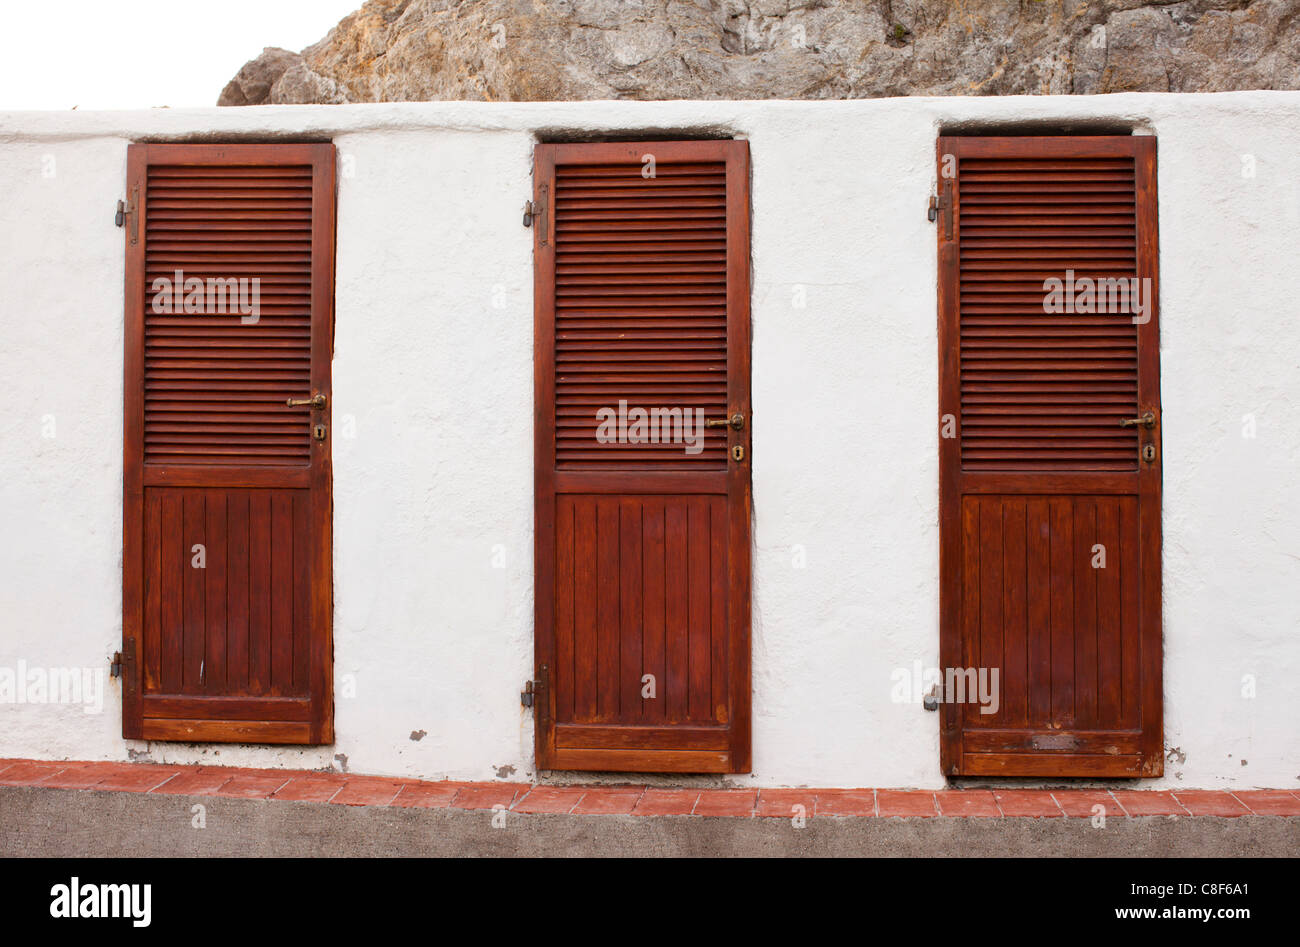 Changing huts stock photos changing huts stock images alamy - Bagno delle donne talamone ...